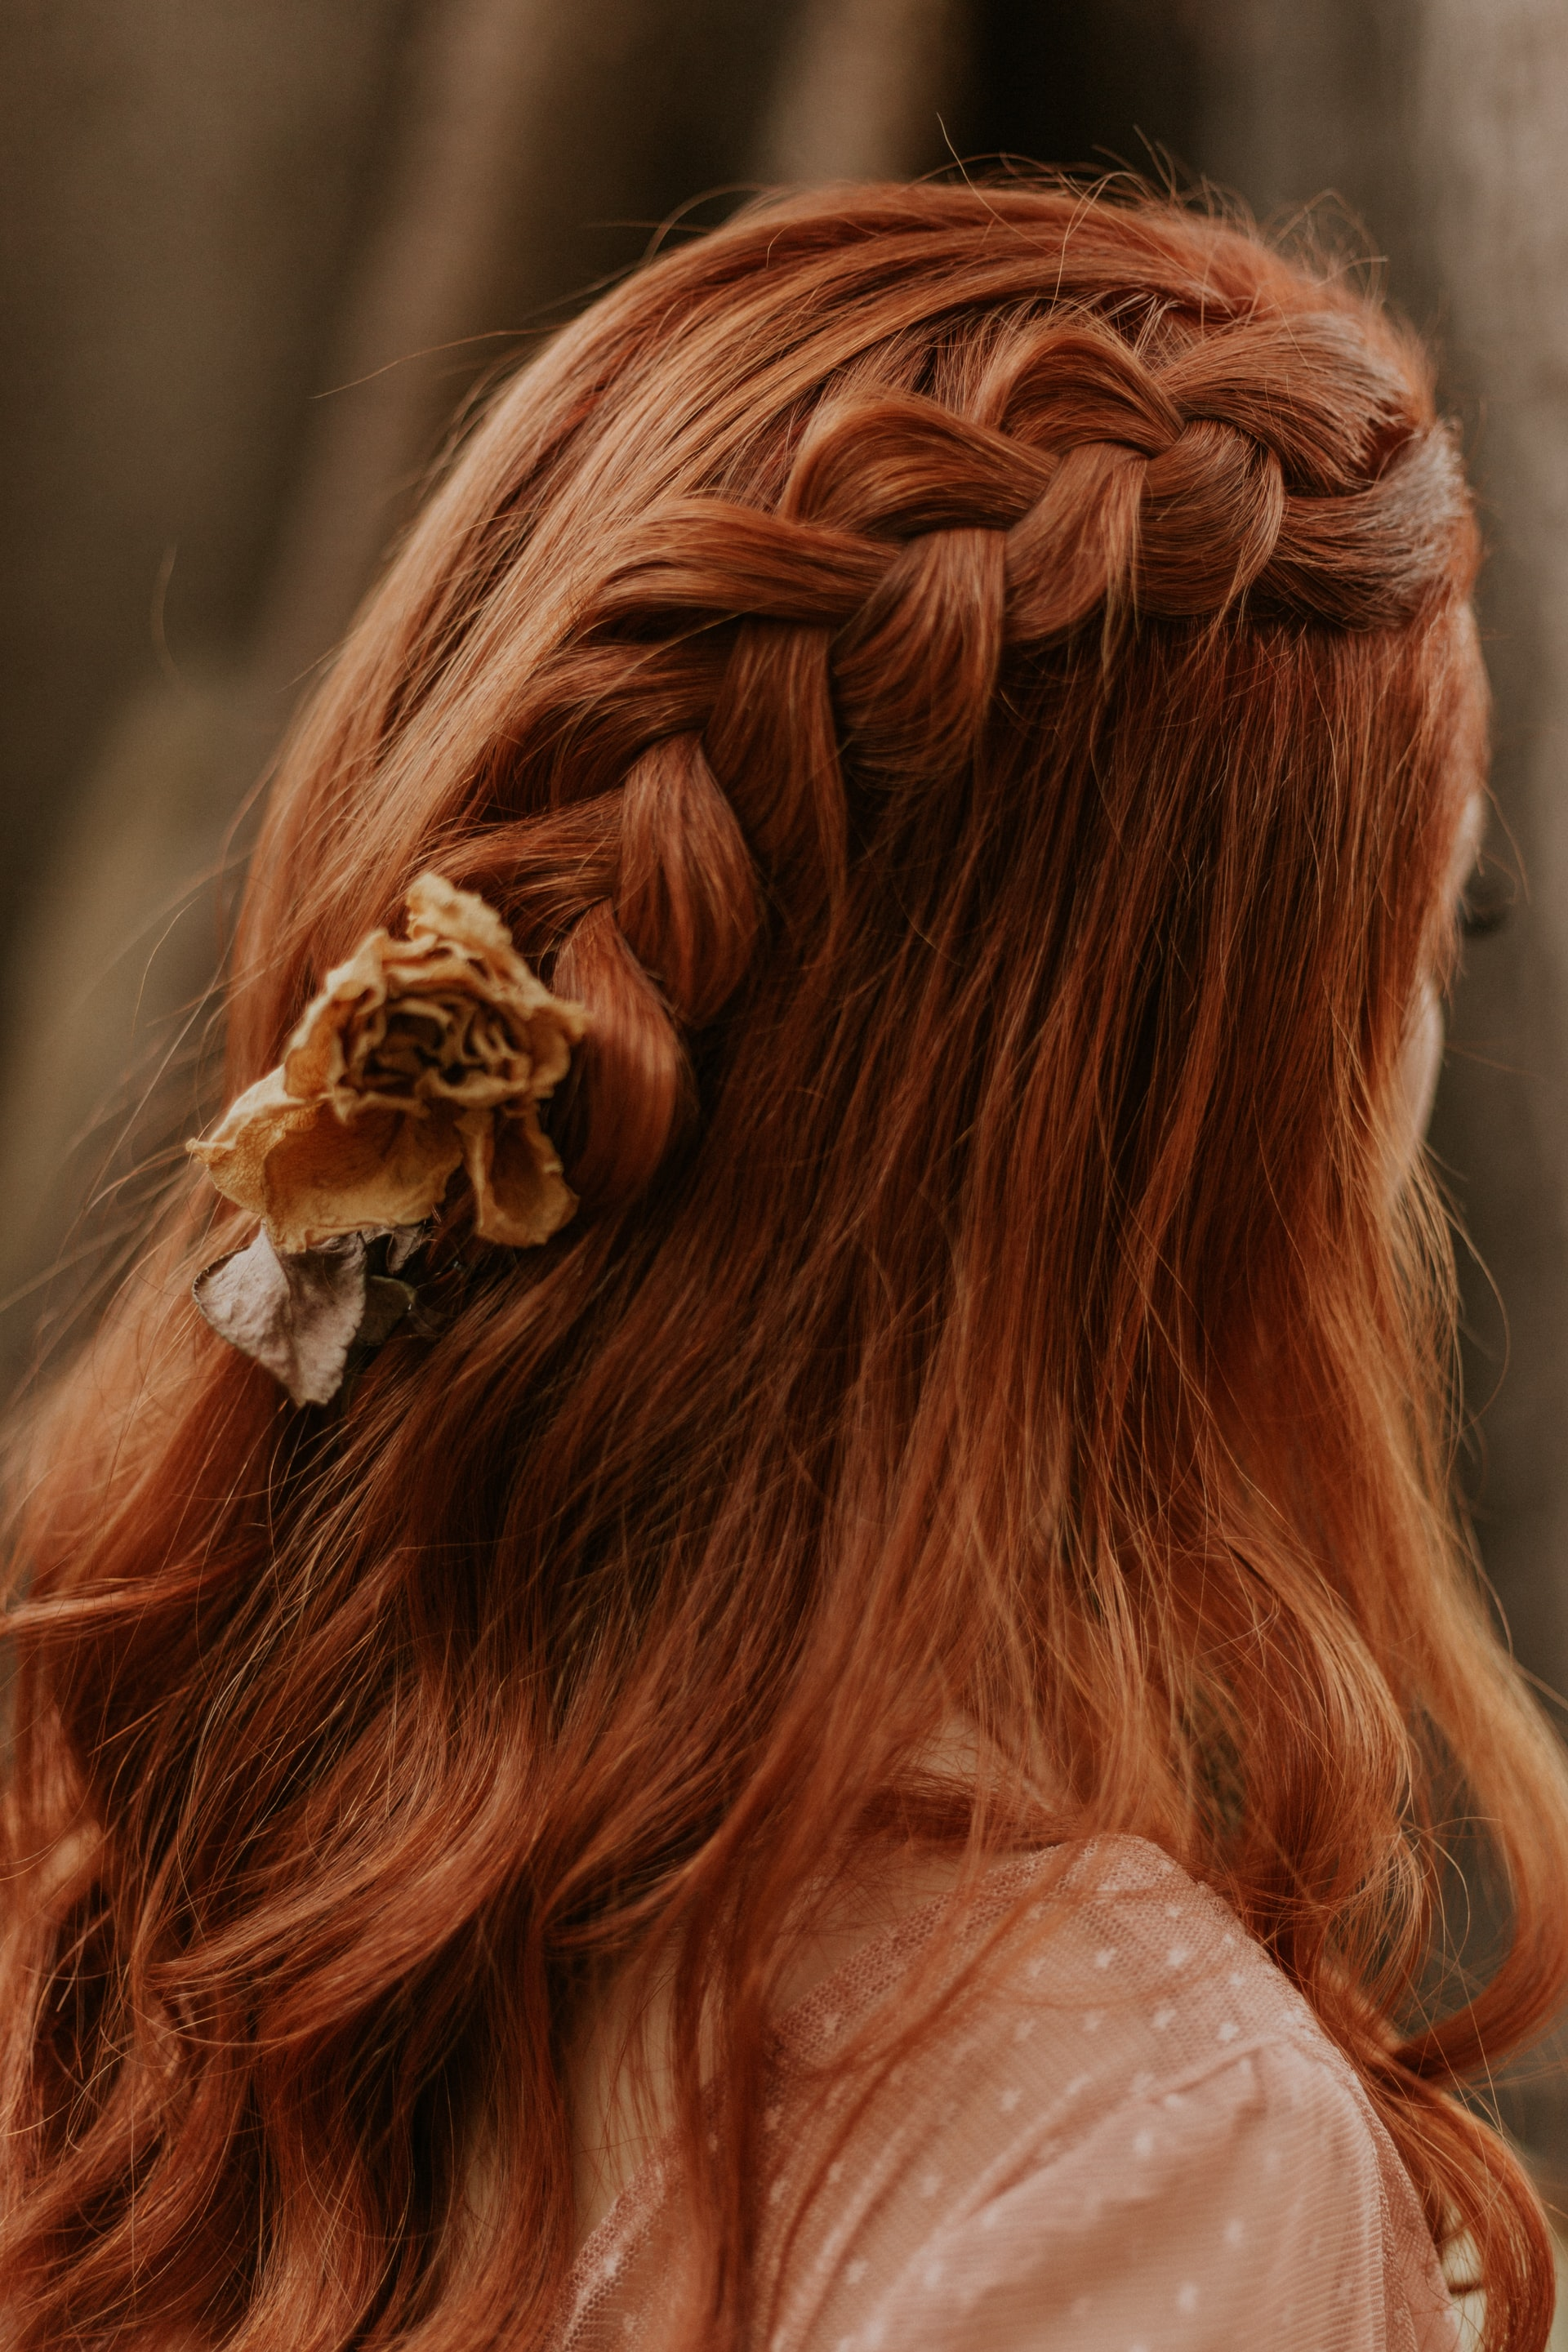 braid in long red hair